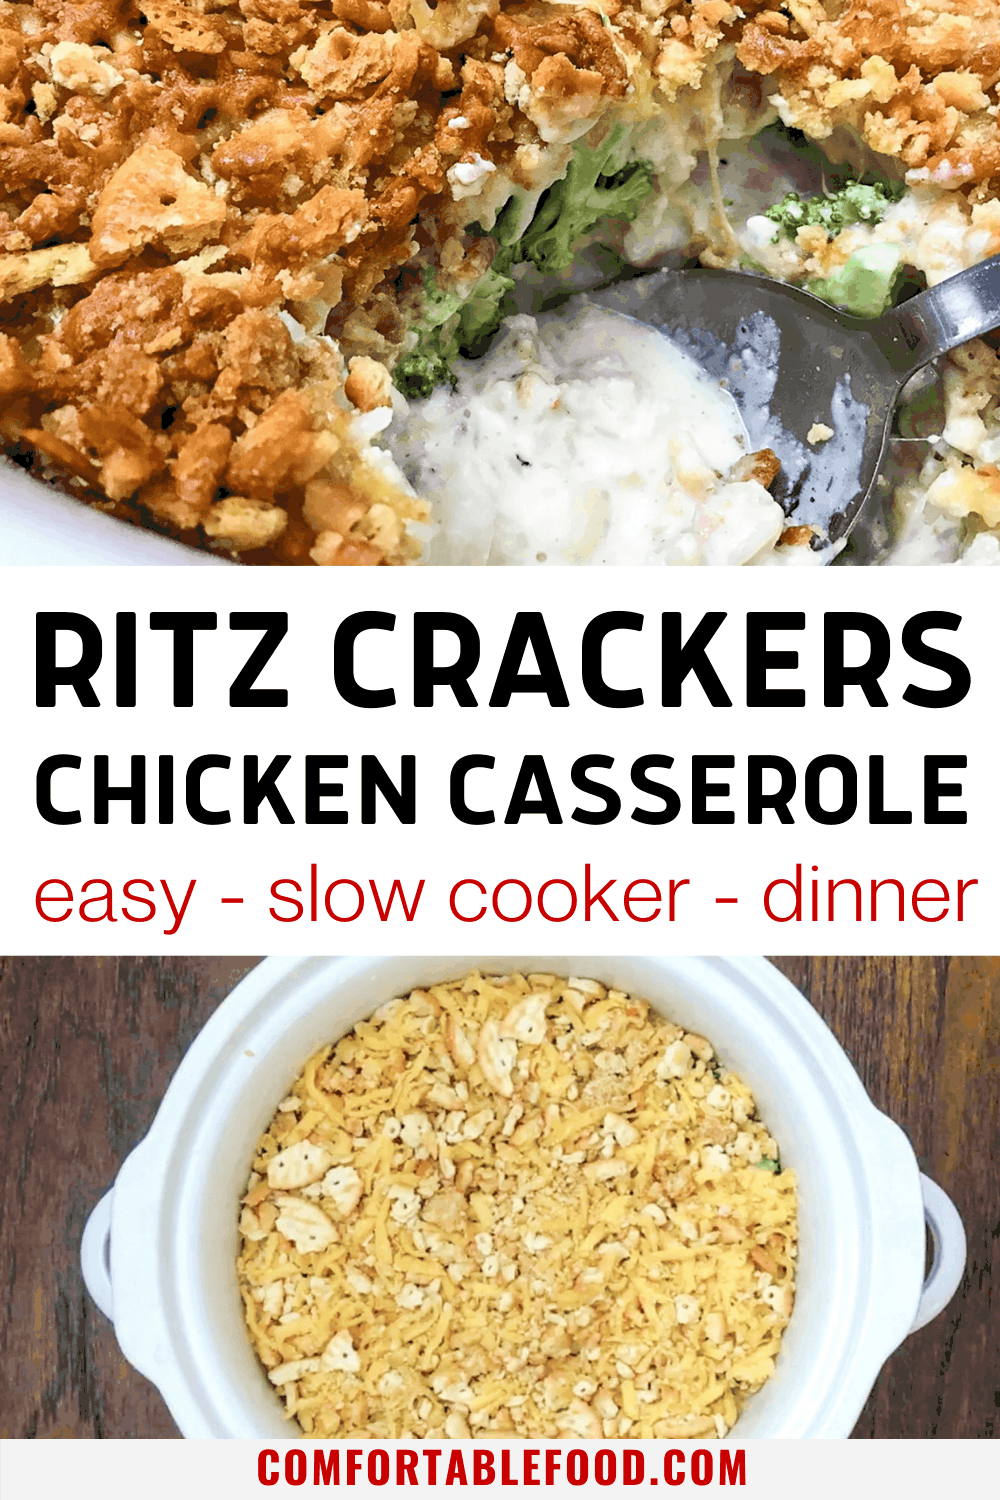 One spoon of chicken casserole with ritz crackers and broccoli and a slow cooker